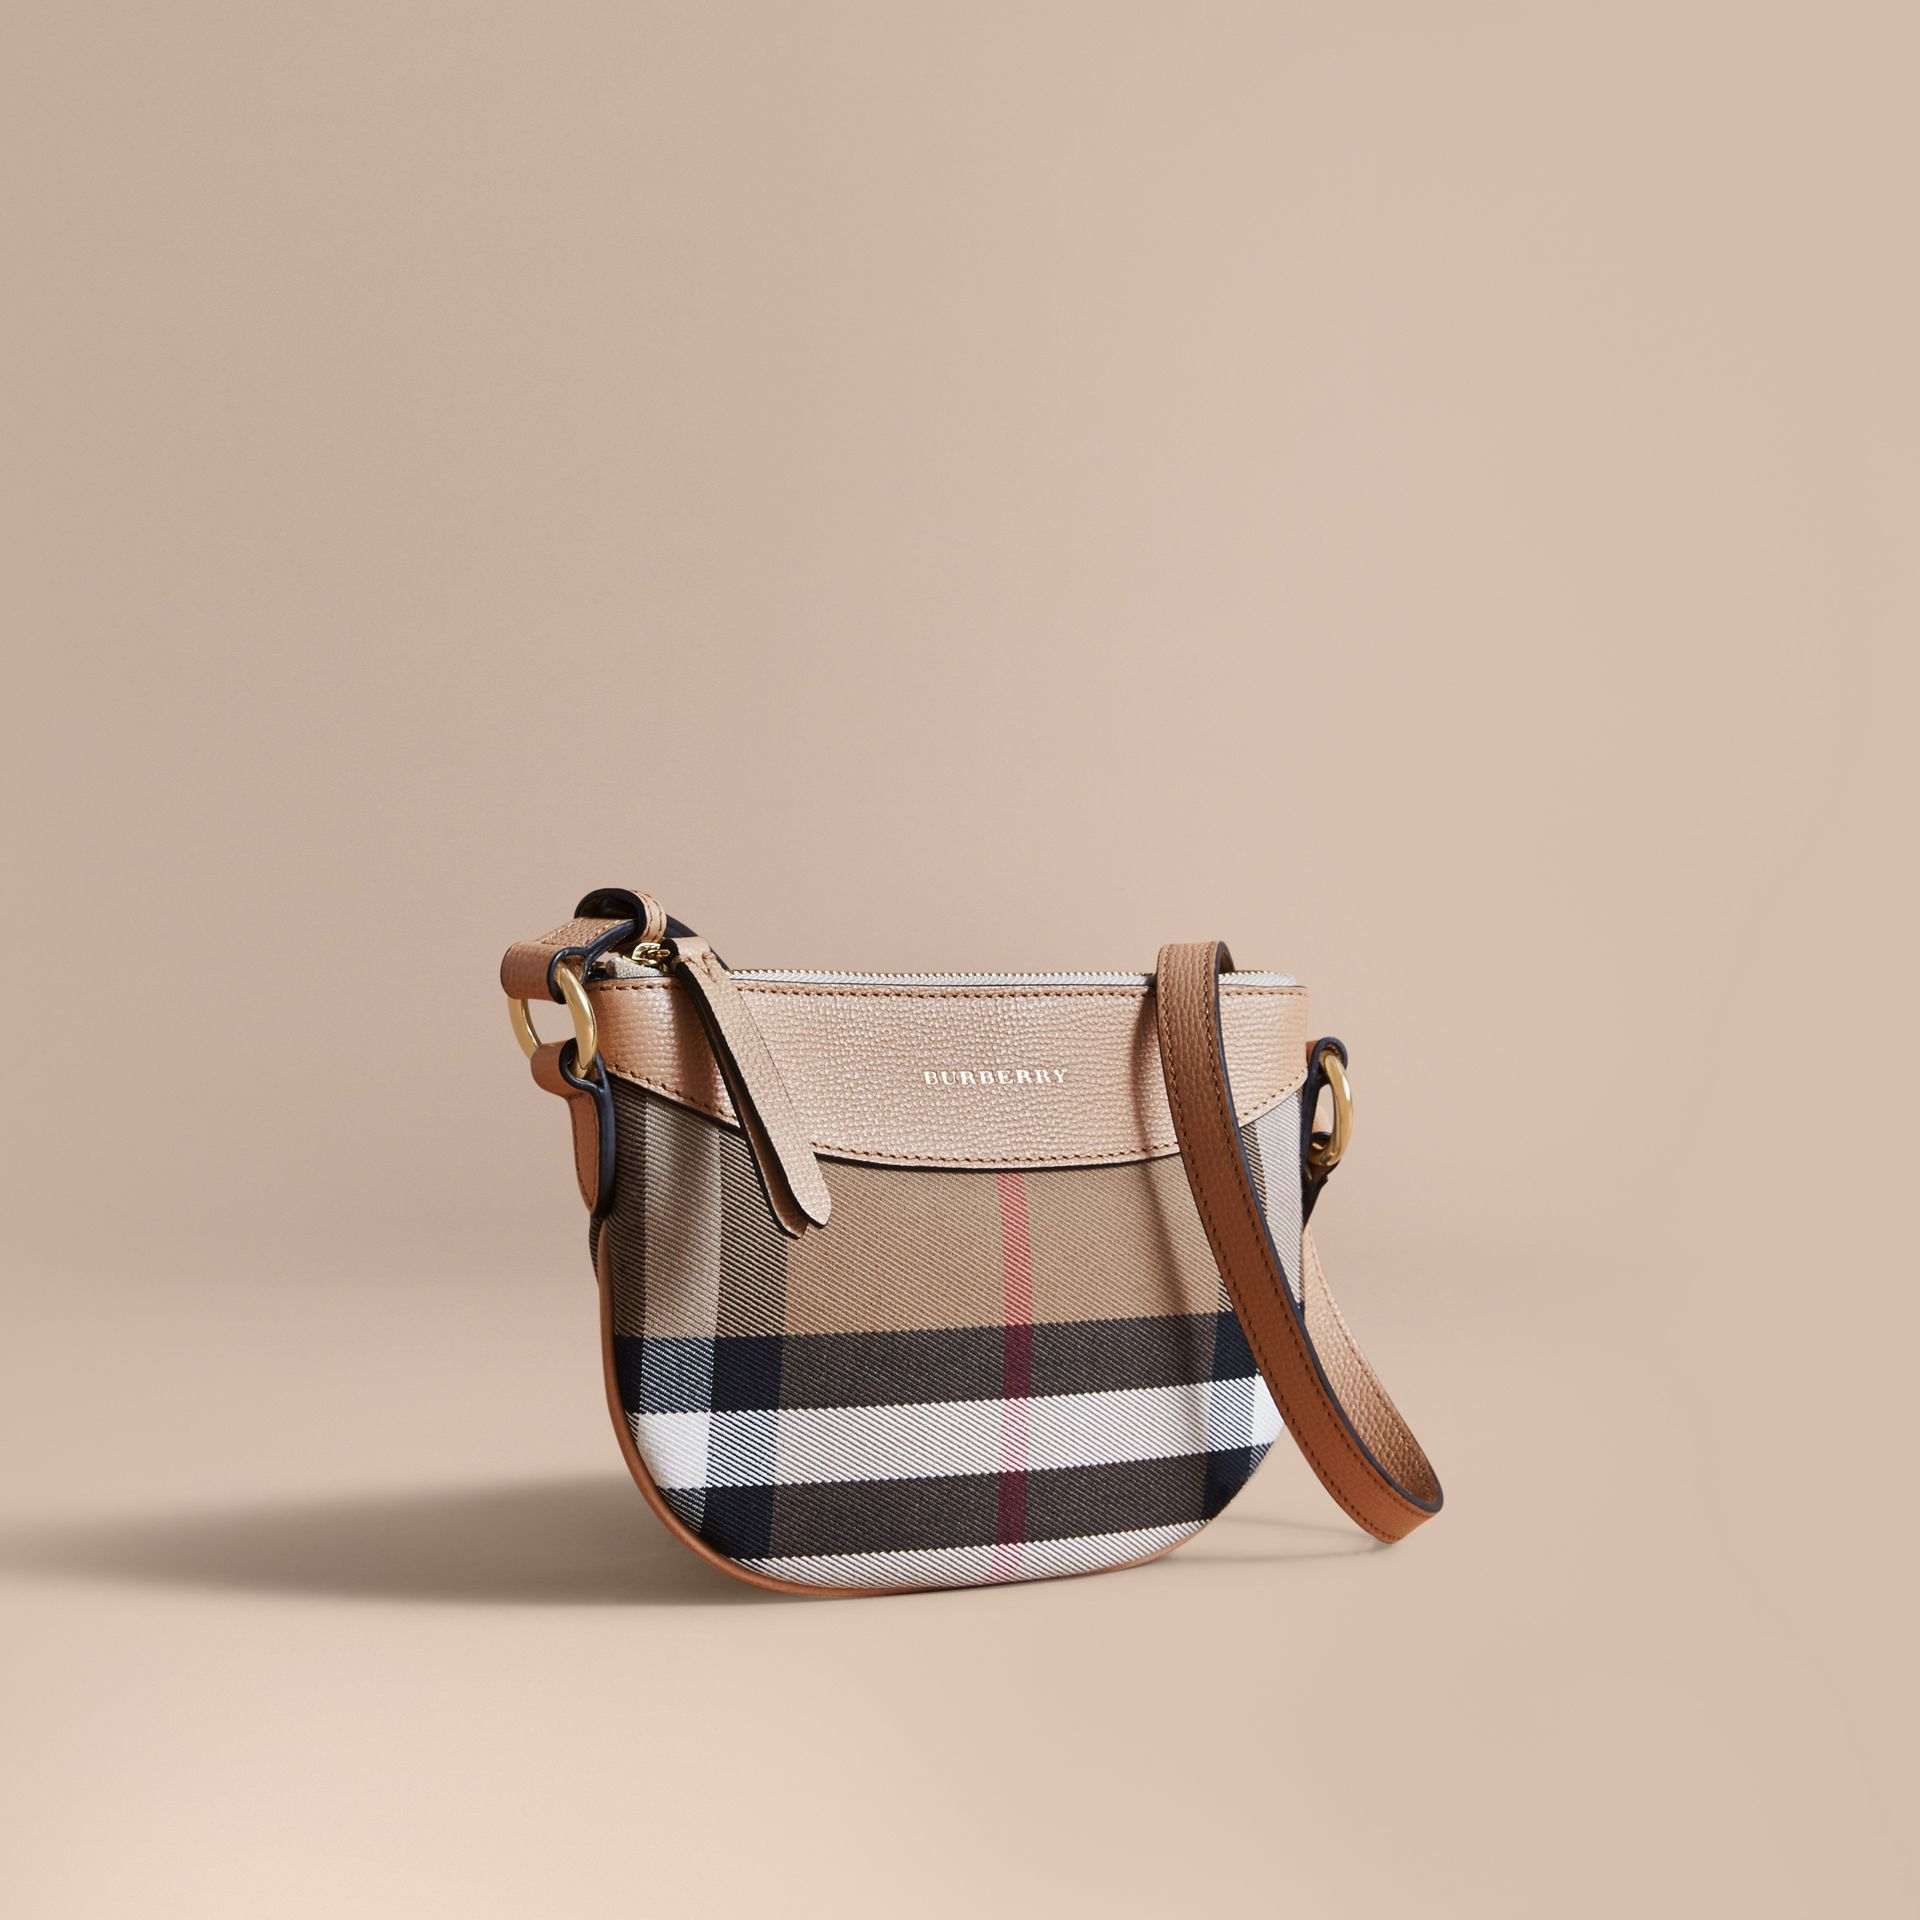 House Check and Leather Crossbody Bag in Chino - Girl | Burberry - gallery image 1